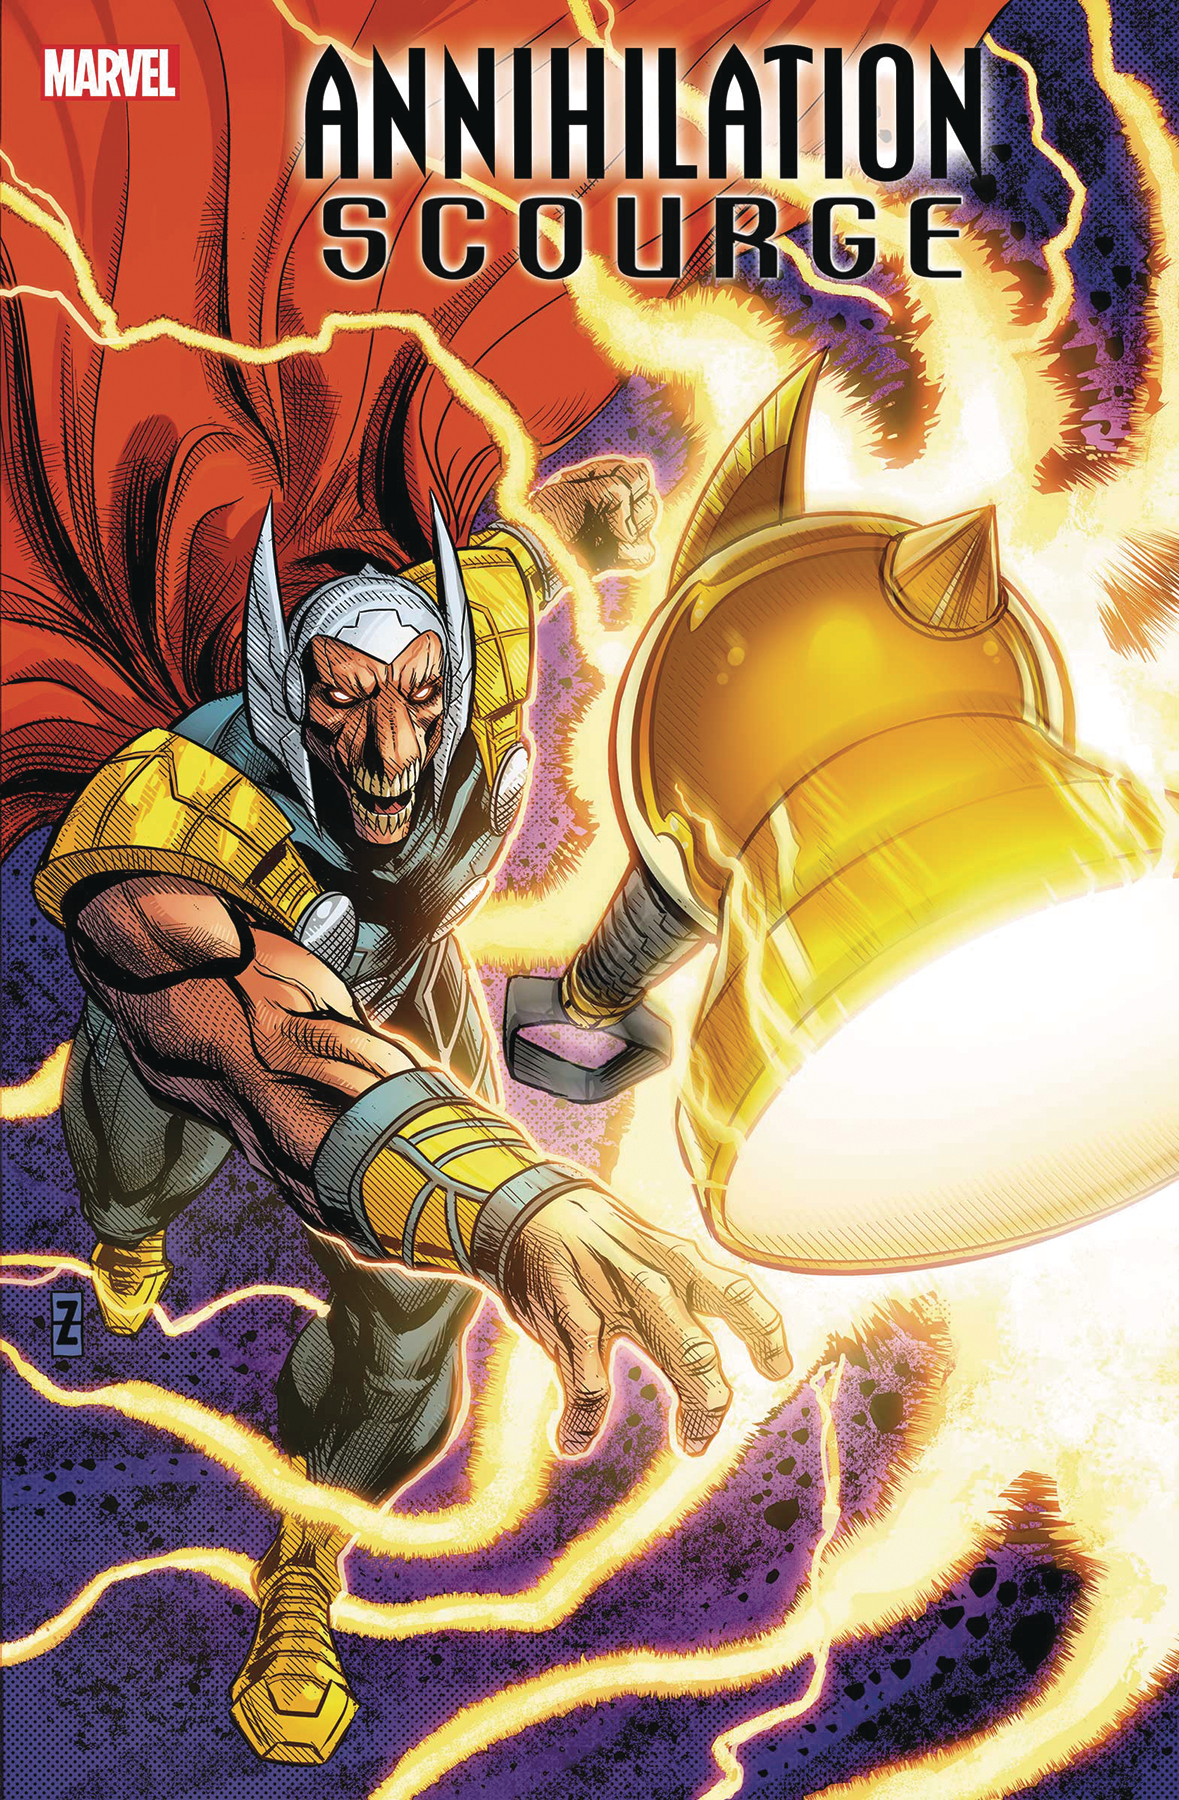 ANNIHILATION SCOURGE BETA RAY BILL #1 ZIRCHER VAR